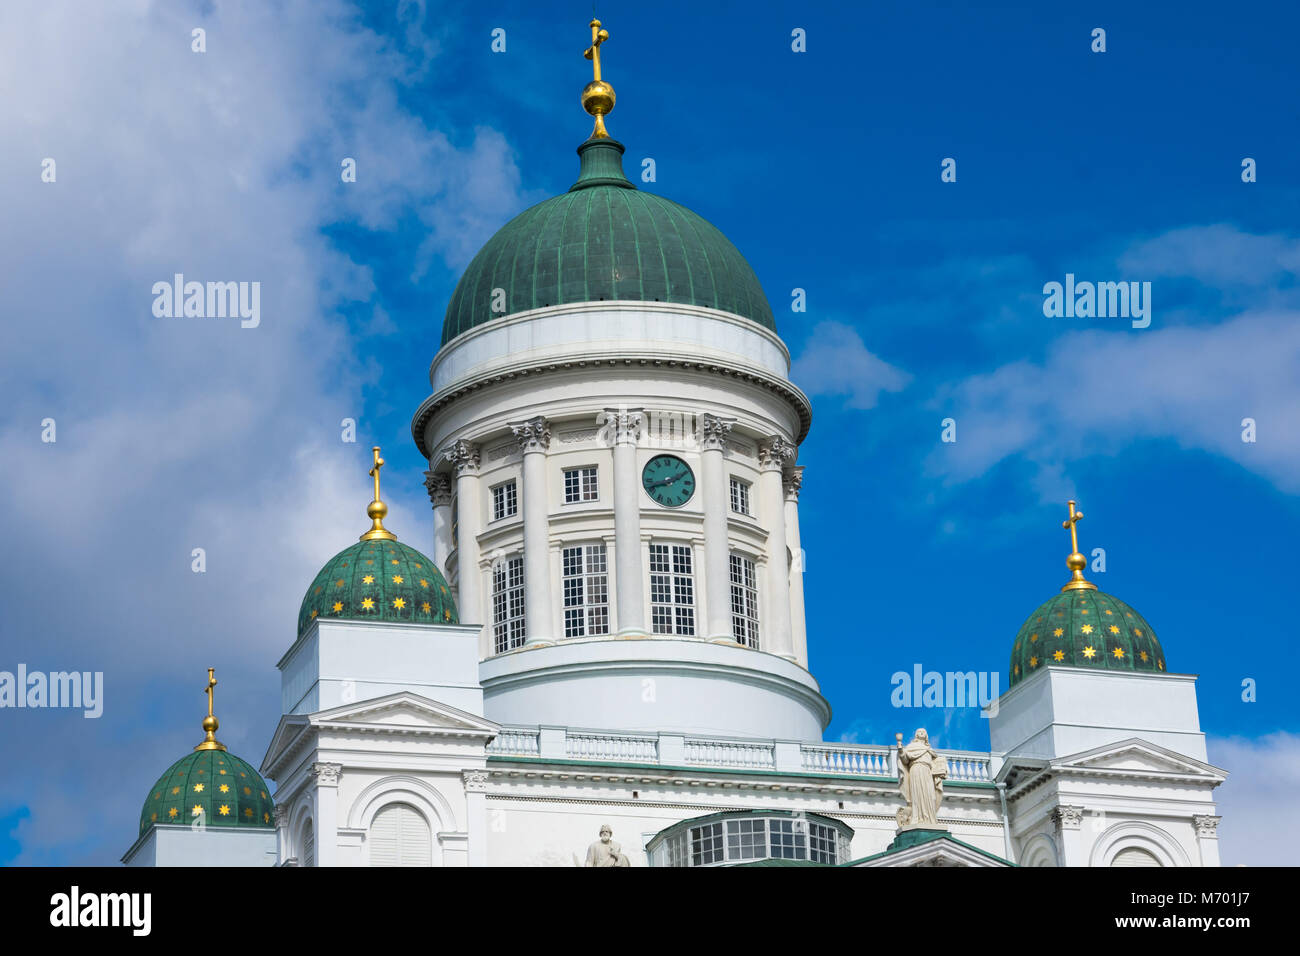 Helsinki Cathedral (Helsingin tuomiokirkko) is the Finnish Evangelical Lutheran cathedral of the Diocese of Helsinki - Stock Image